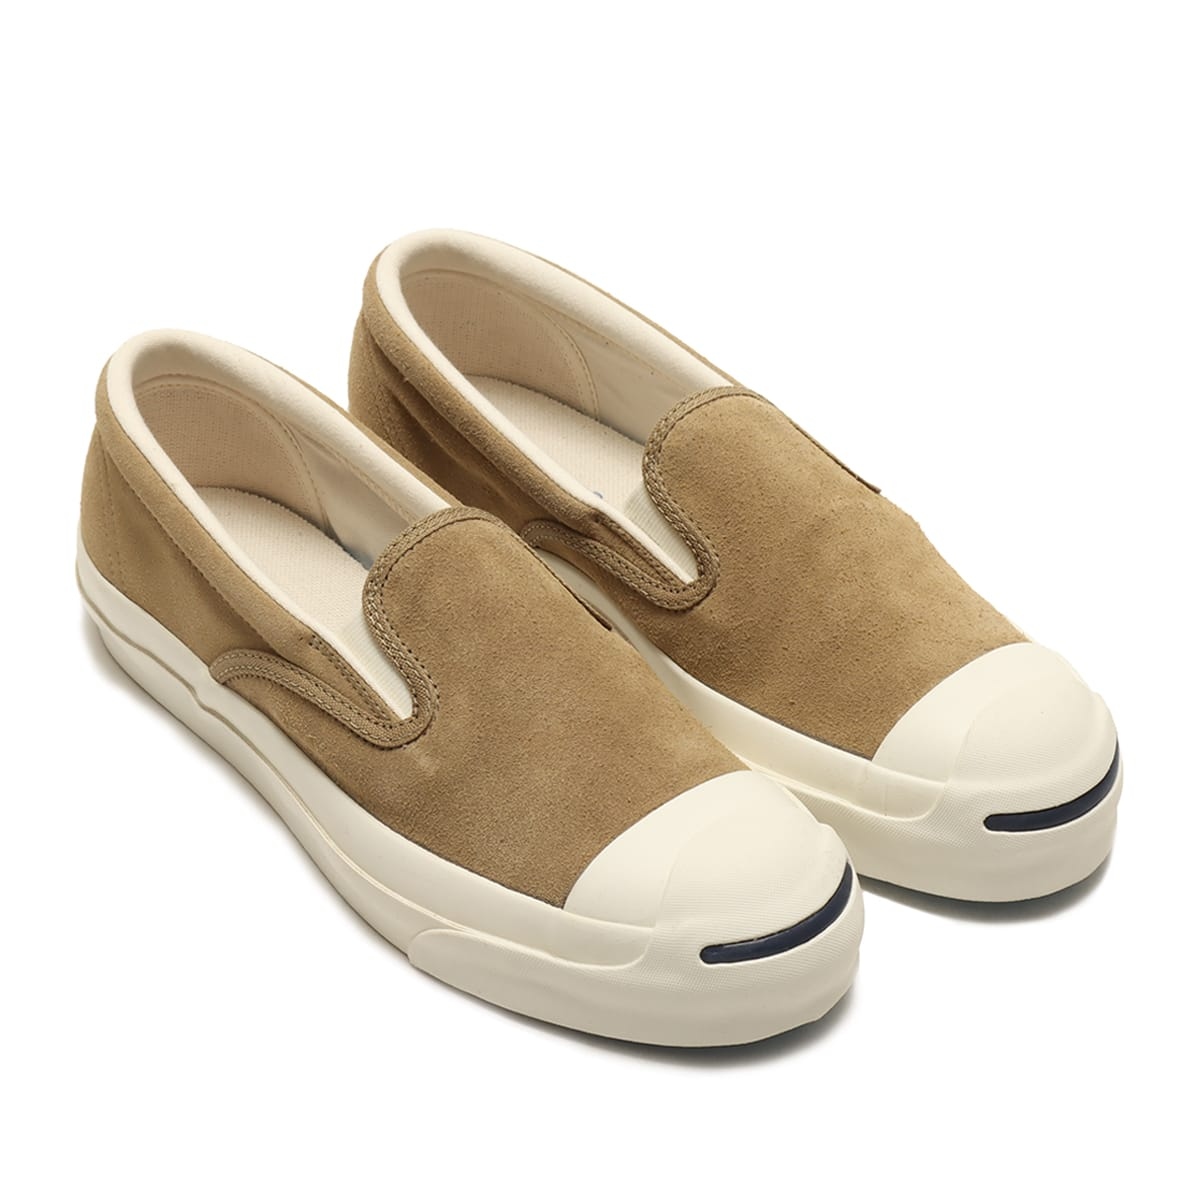 CONVERSE JACK PURCELL RET SUEDE SLIP-ON BIEGE 21SS-I_photo_large